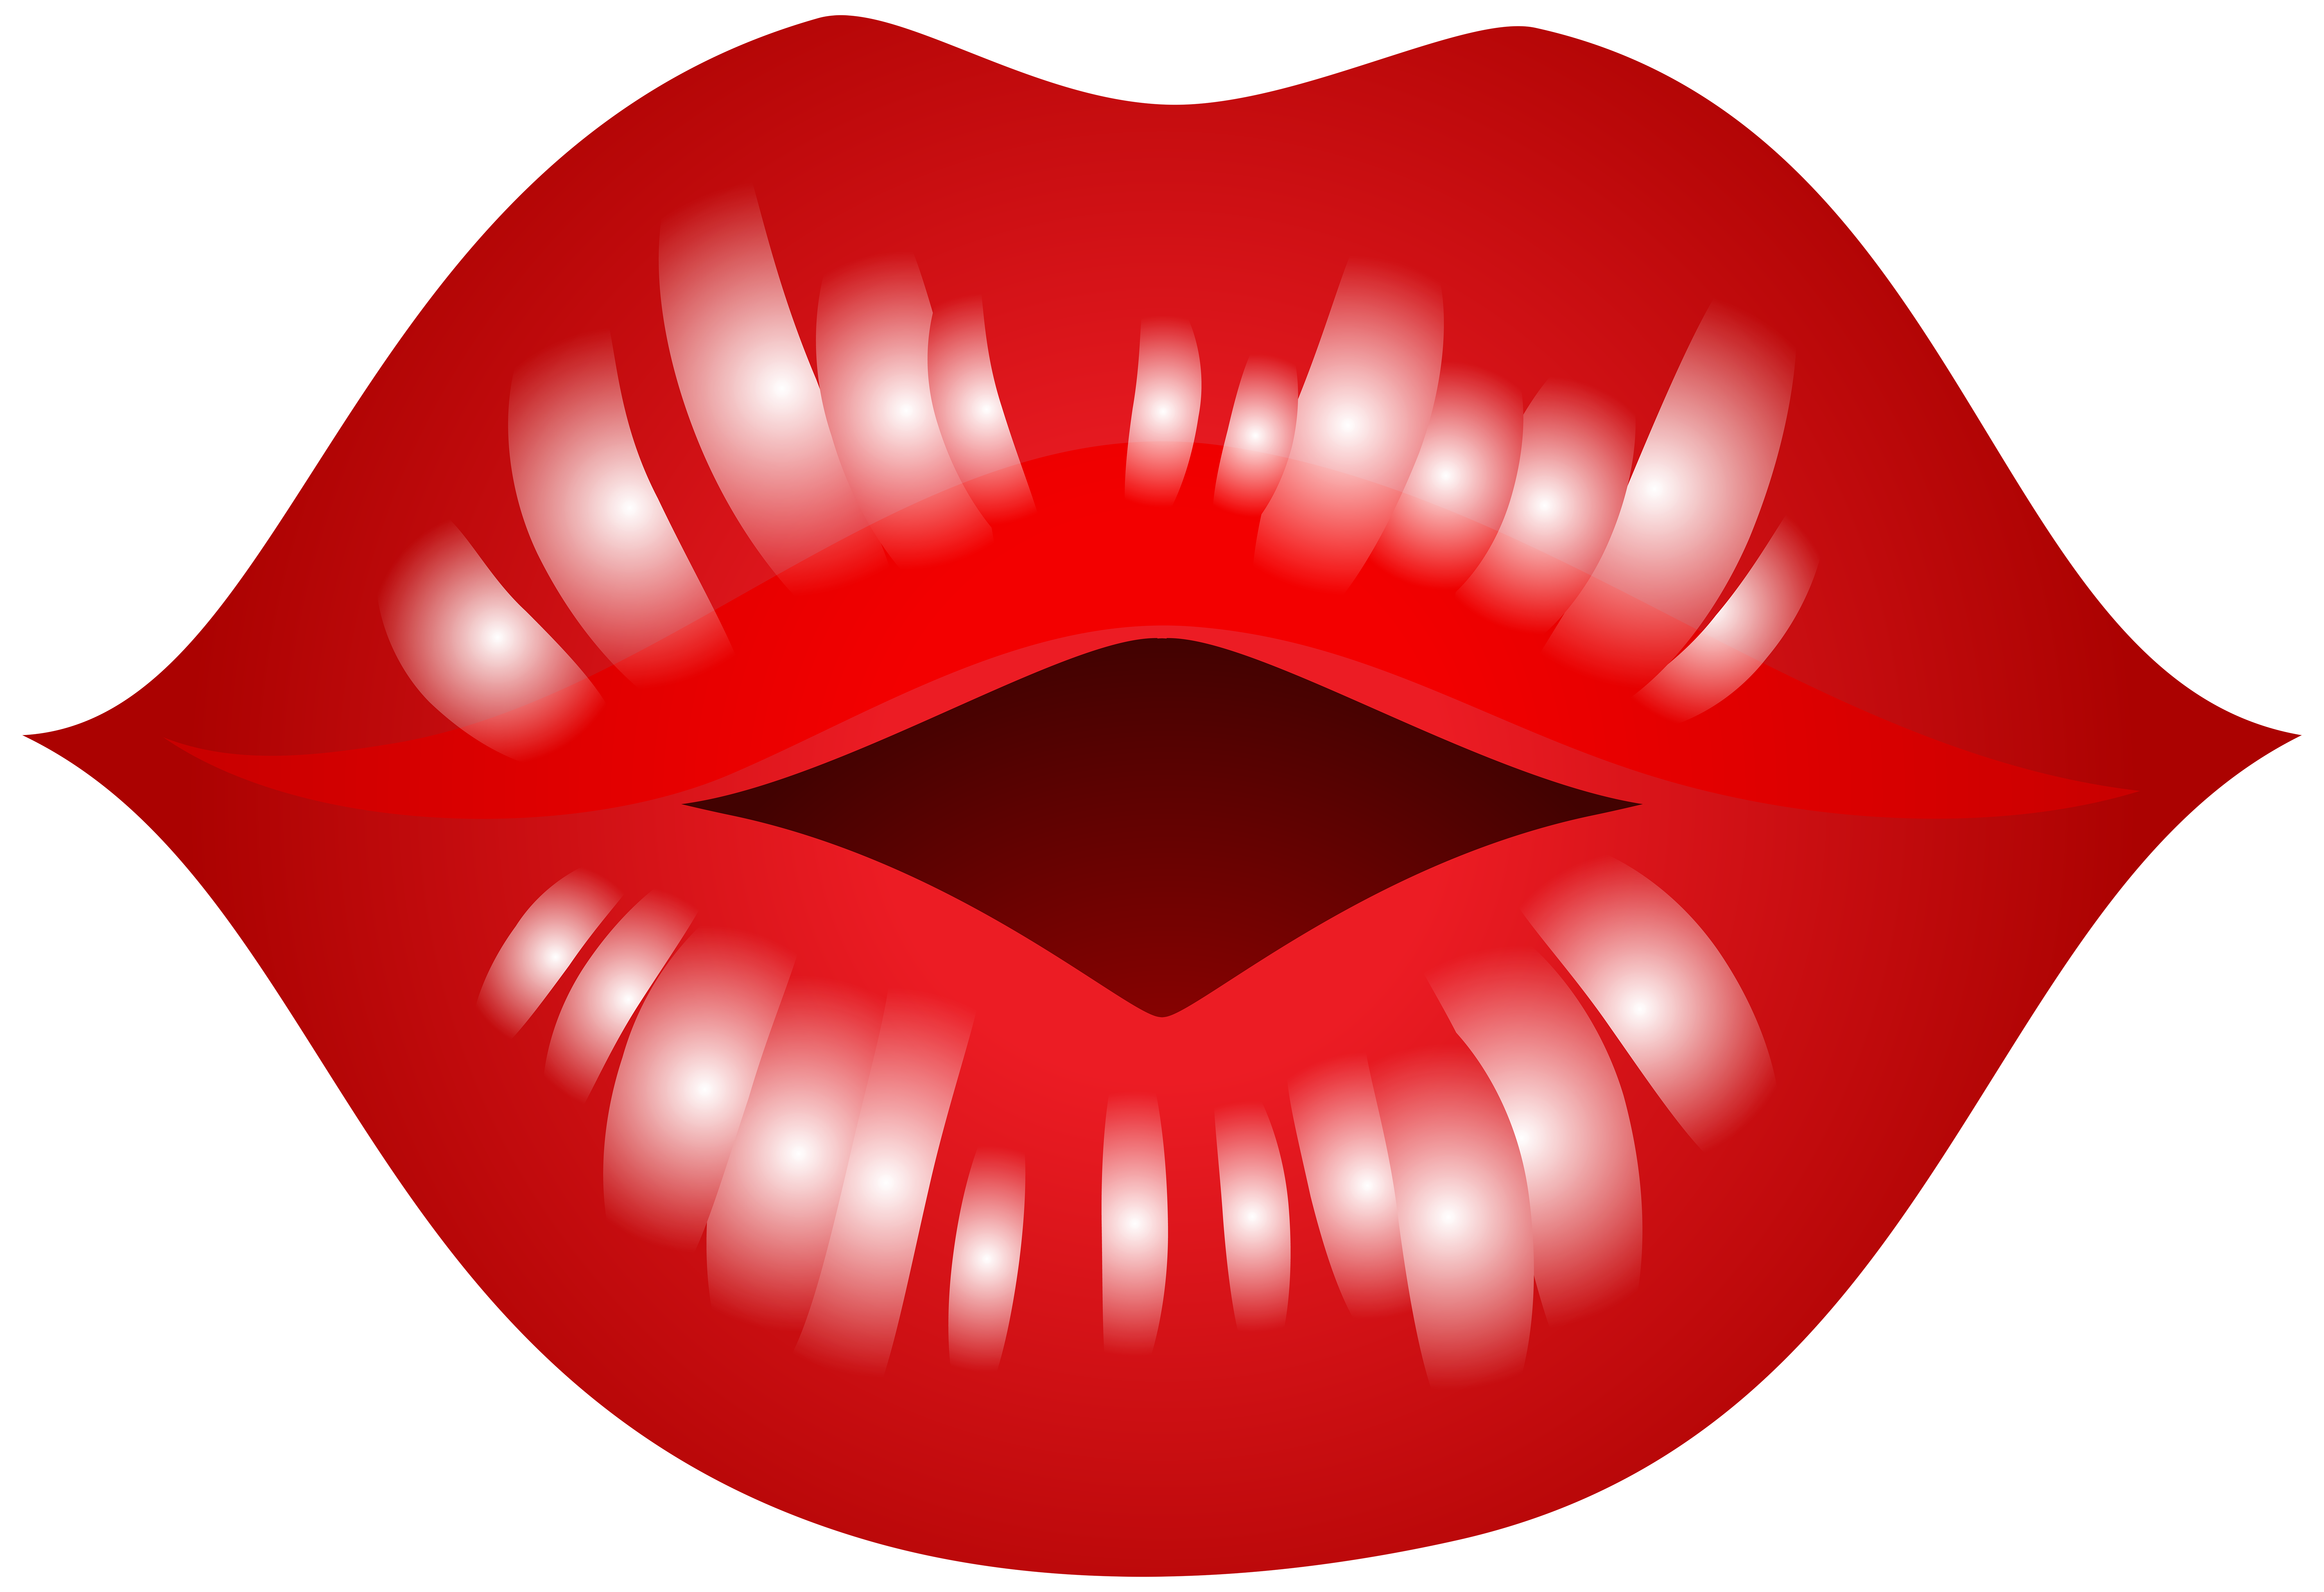 Kiss lips png clip. Lip clipart mouth